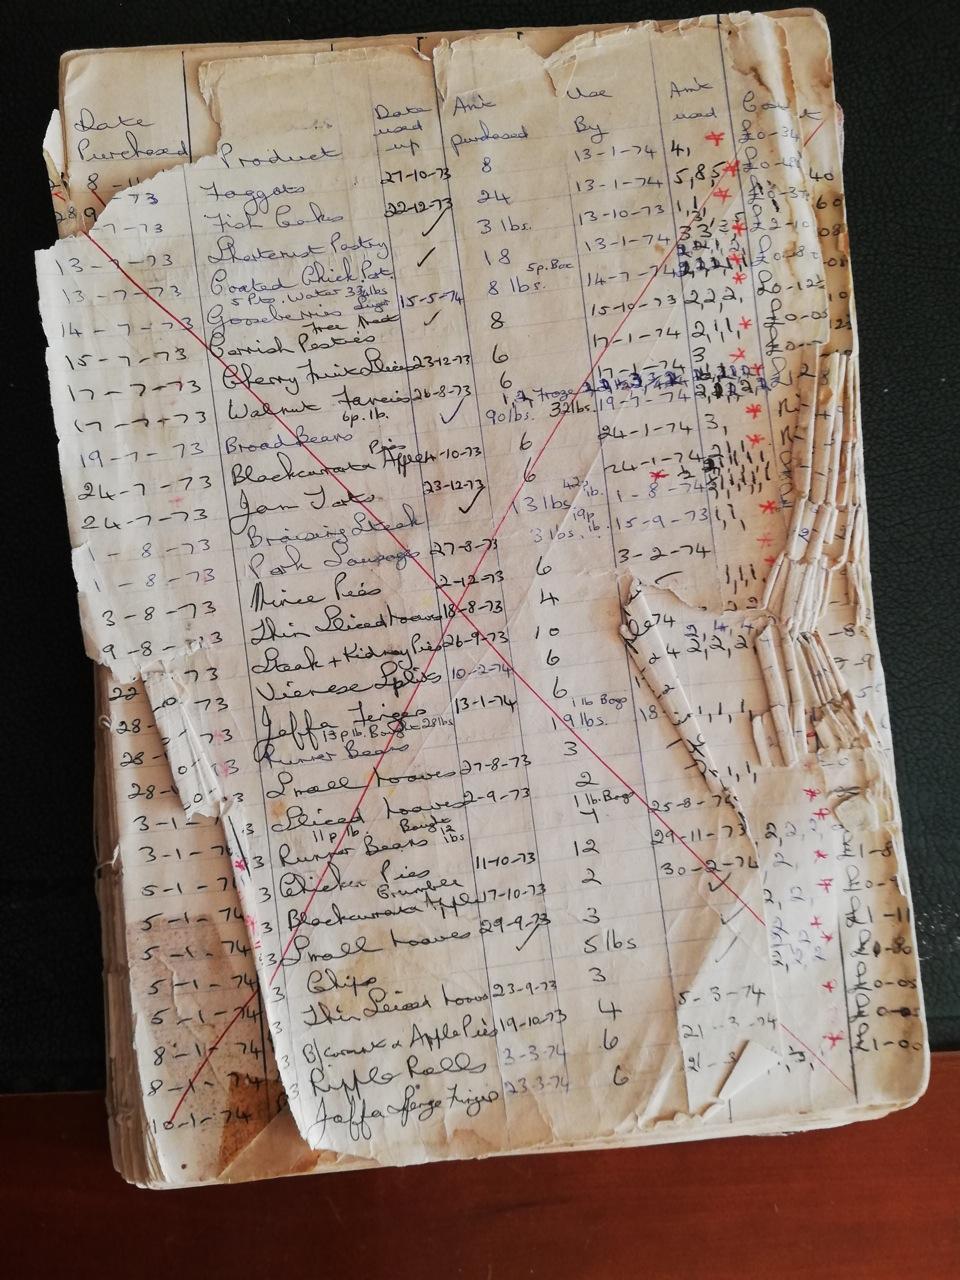 Iris' freezer book - page 1, recording started in 1973.